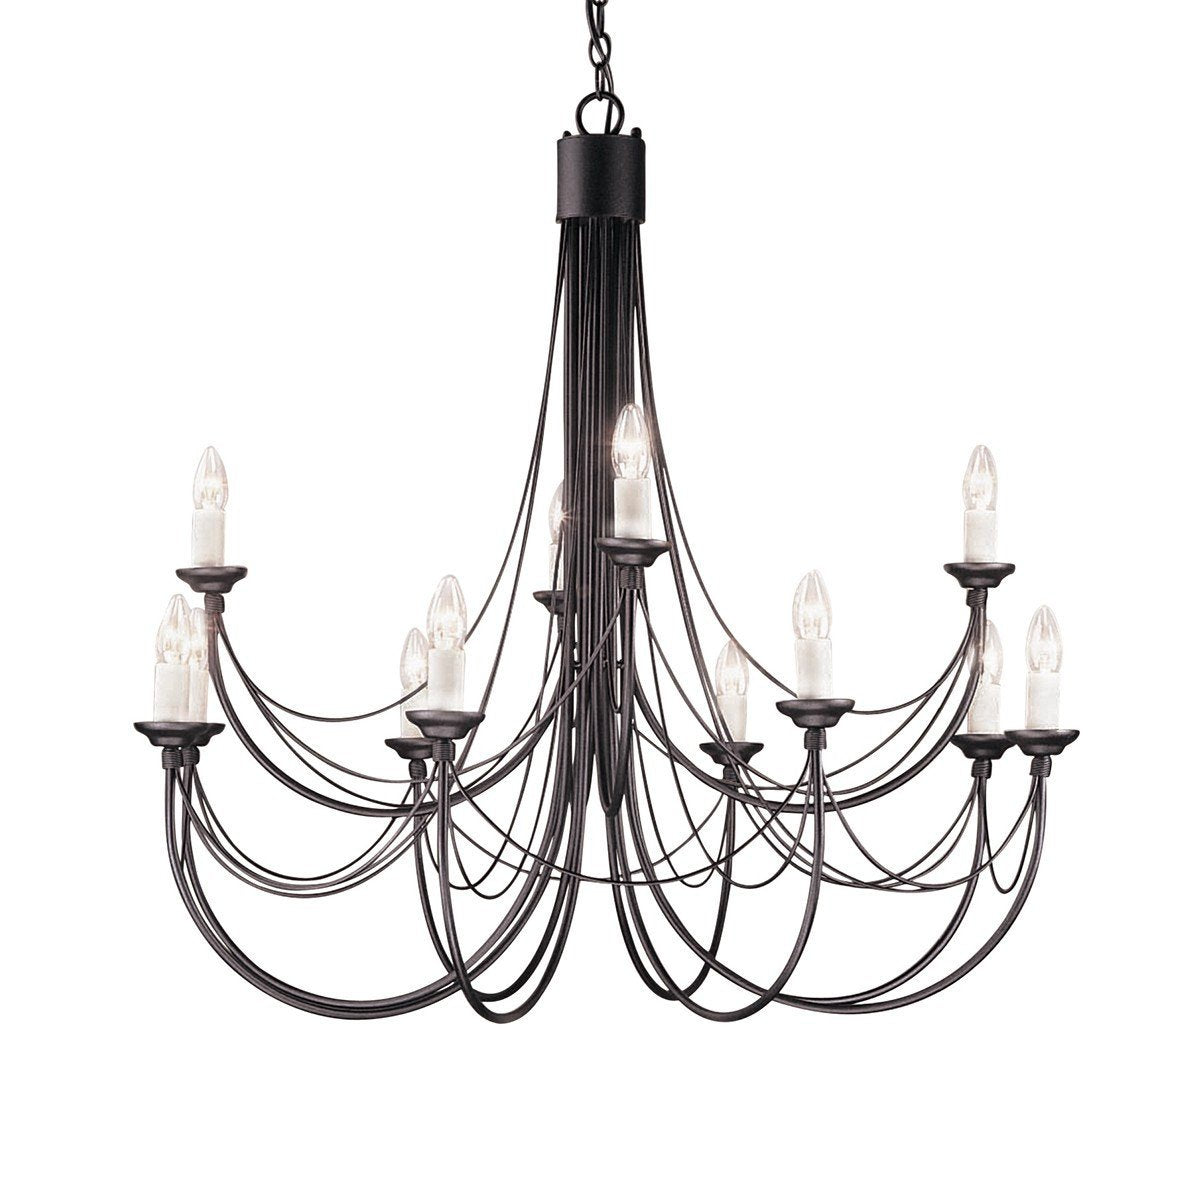 Carisbrooke 12 Arm Chandelier Black - London Lighting - 1